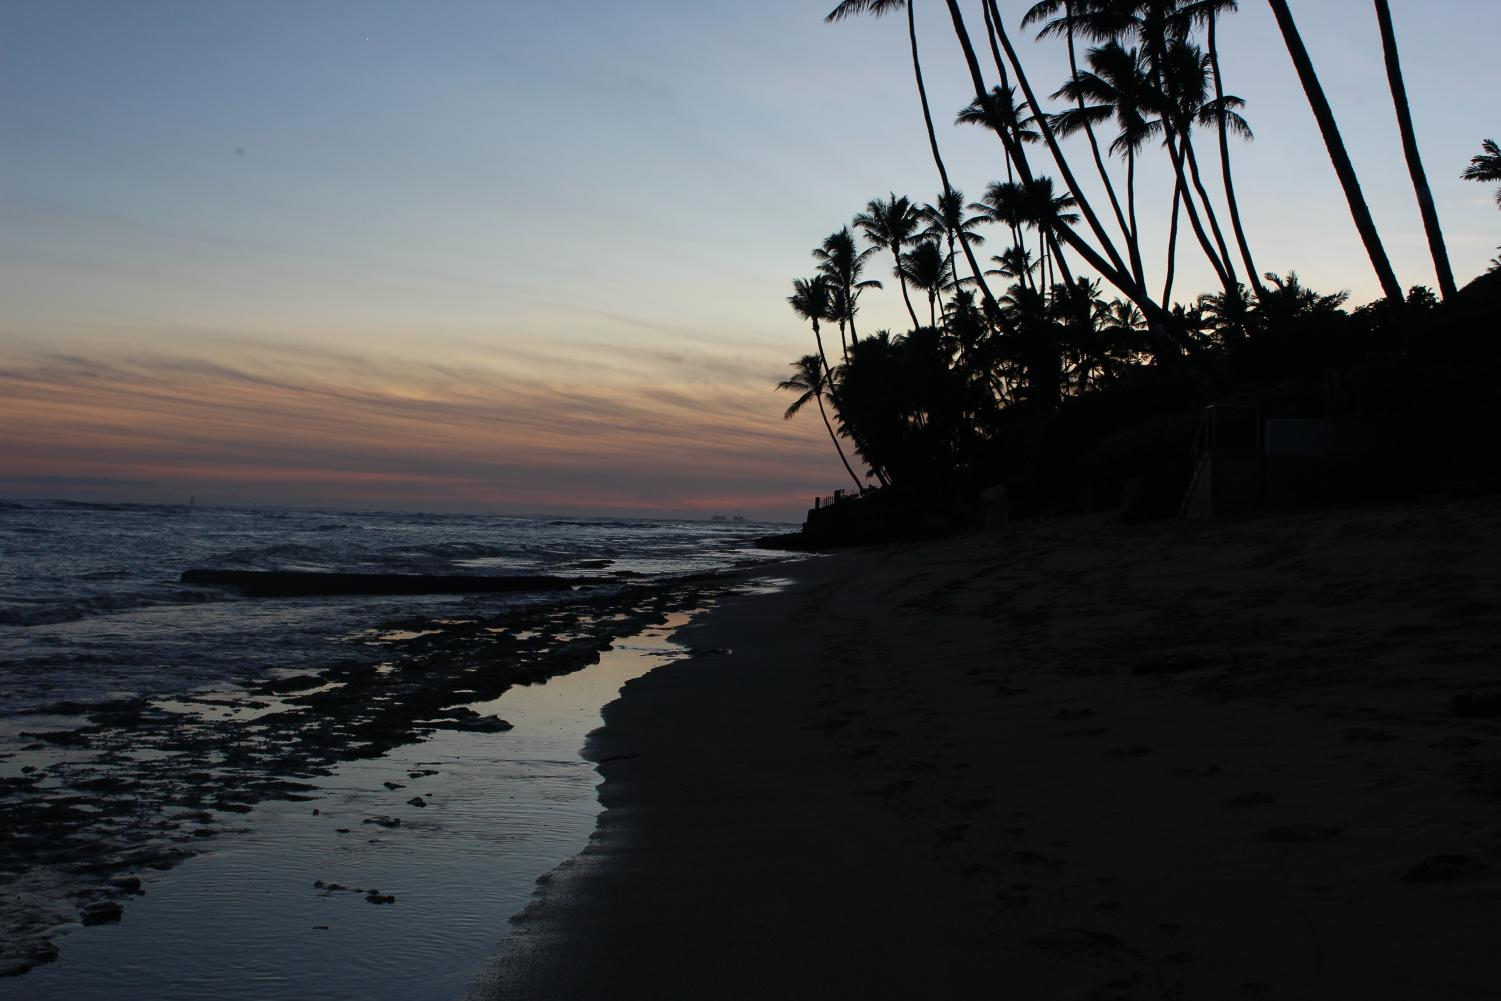 The sun sets and reflects into the ocean at a hidden beach close to campus called Cromwell's.